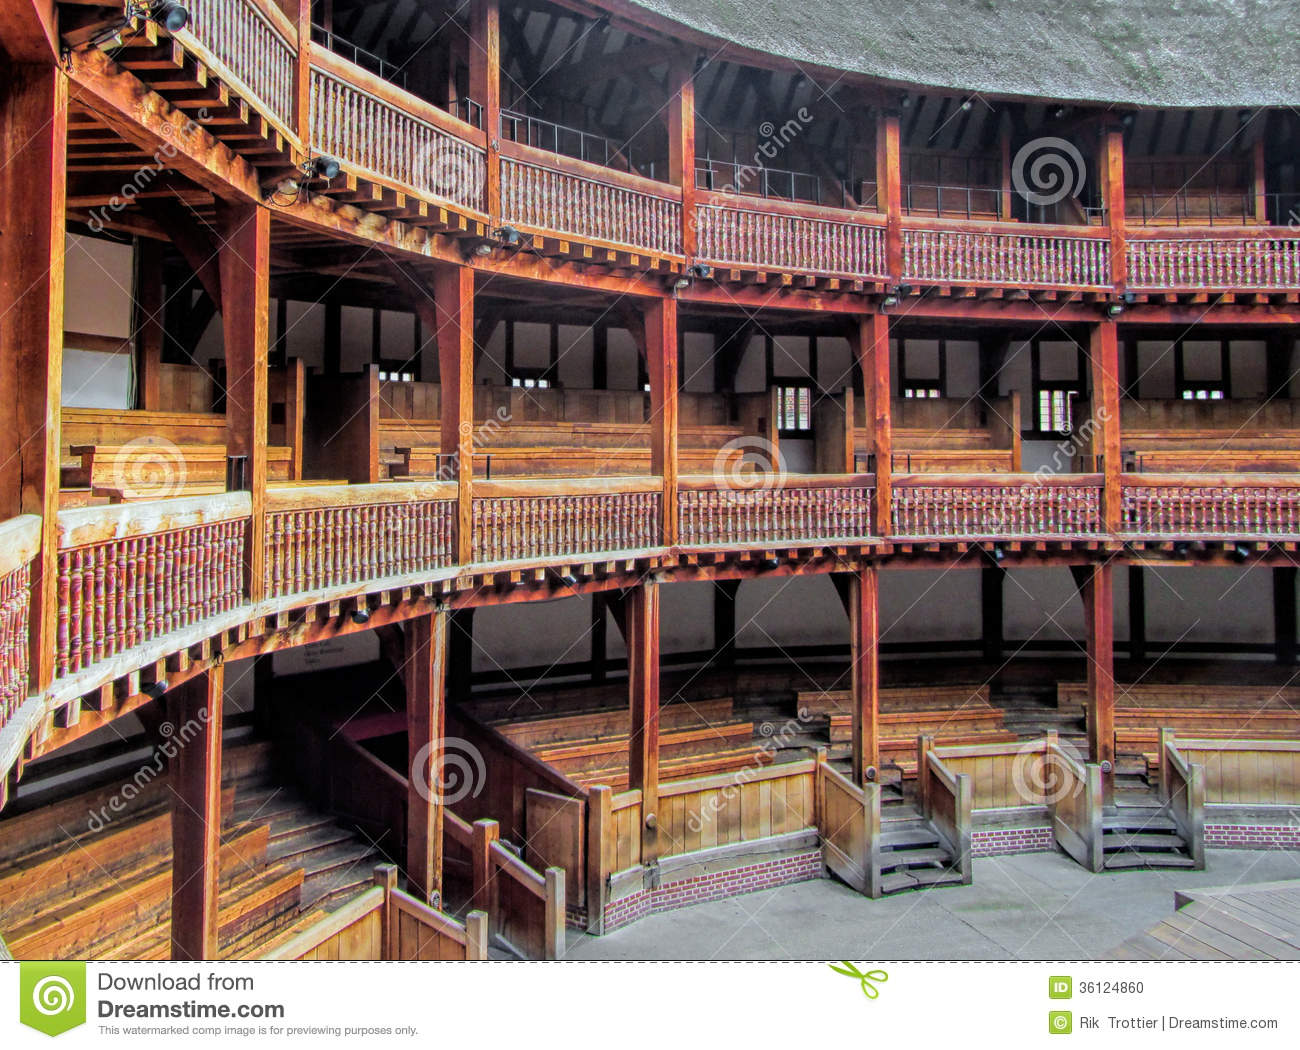 Shakespeare's Globe Theatre Stock Photos, Images, & Pictures.